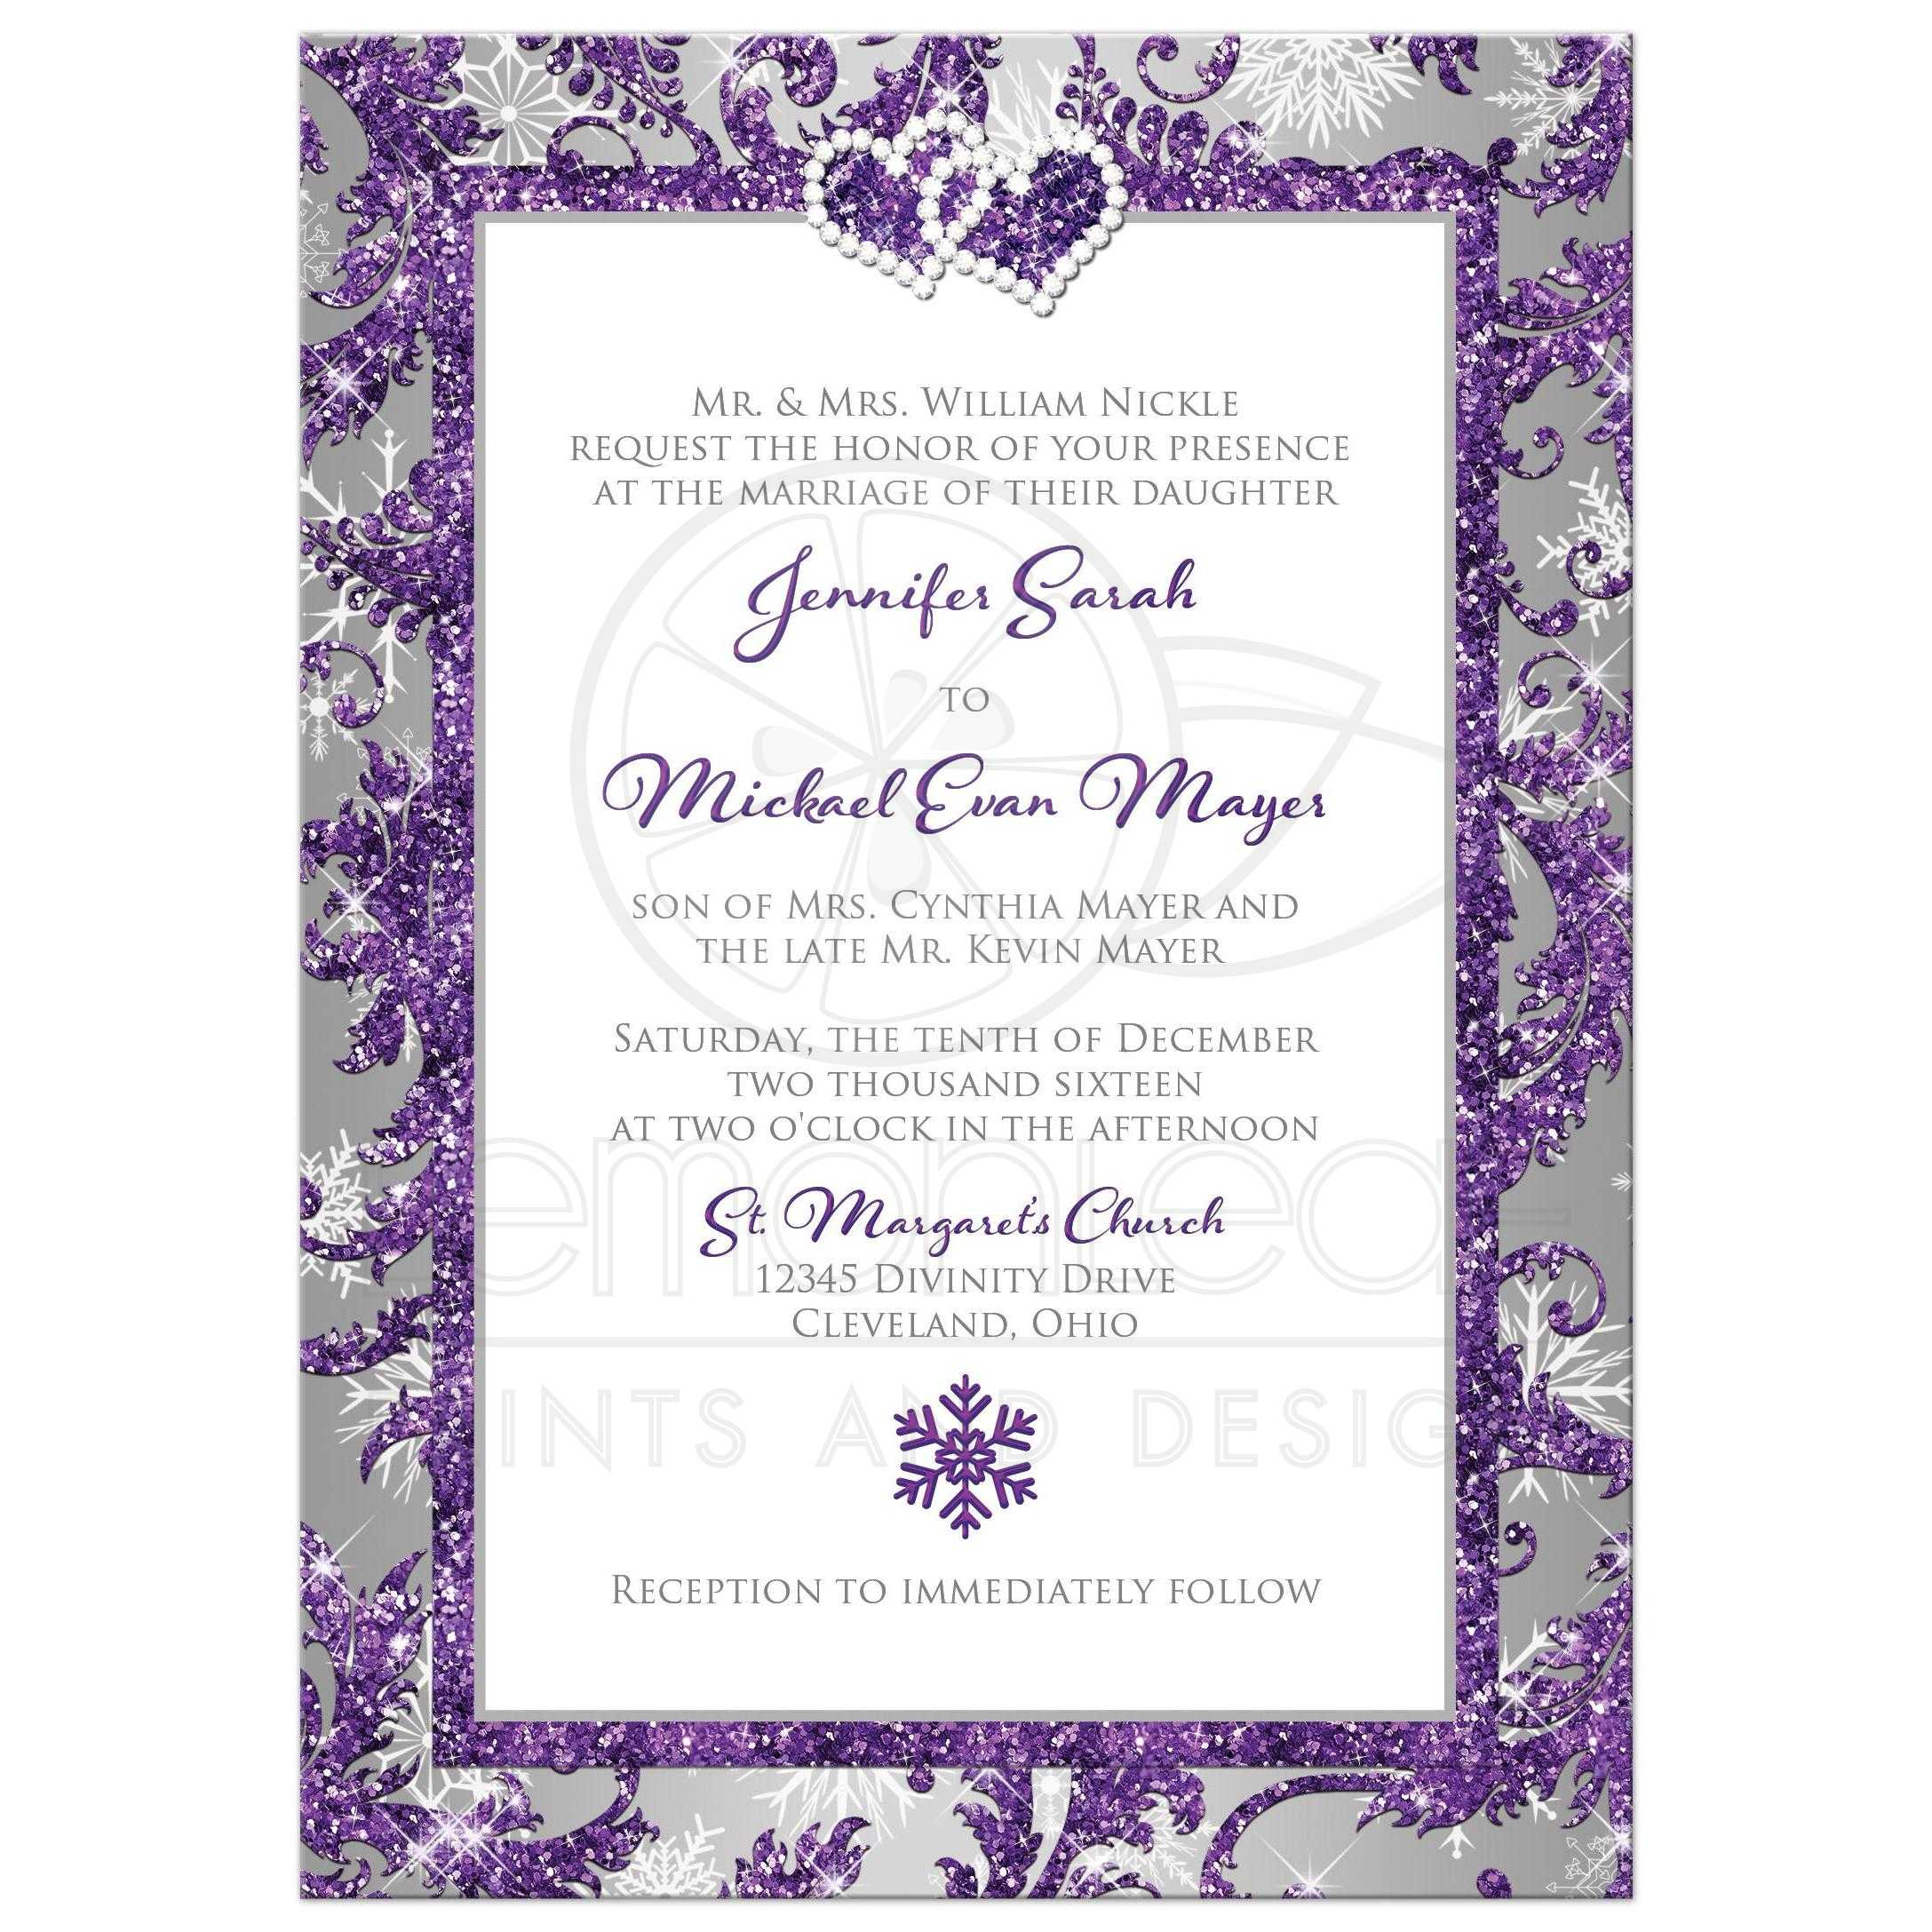 Great Winter Wonderland Wedding Invitation In Ice Purple, Silver, And White  Snowflakes With Joined ...